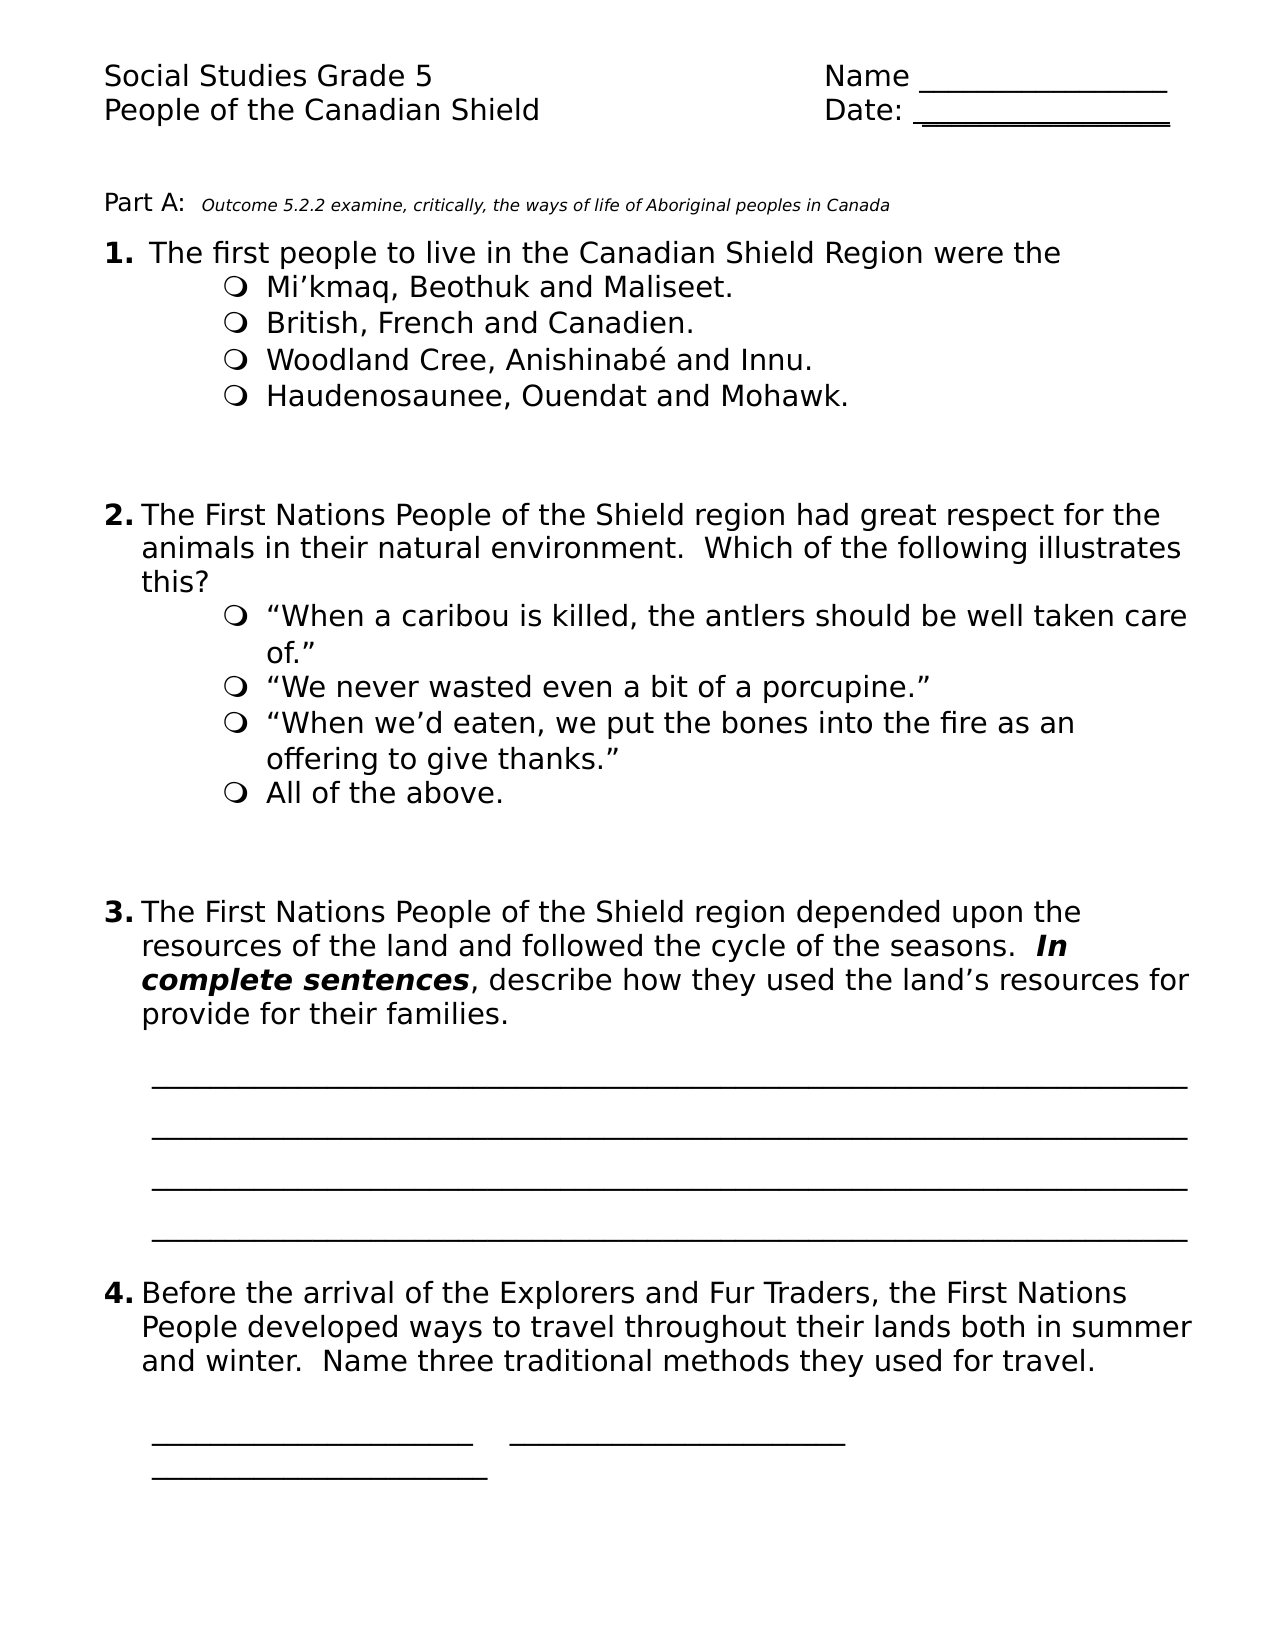 People of the Canadian Shield Test Resource Preview